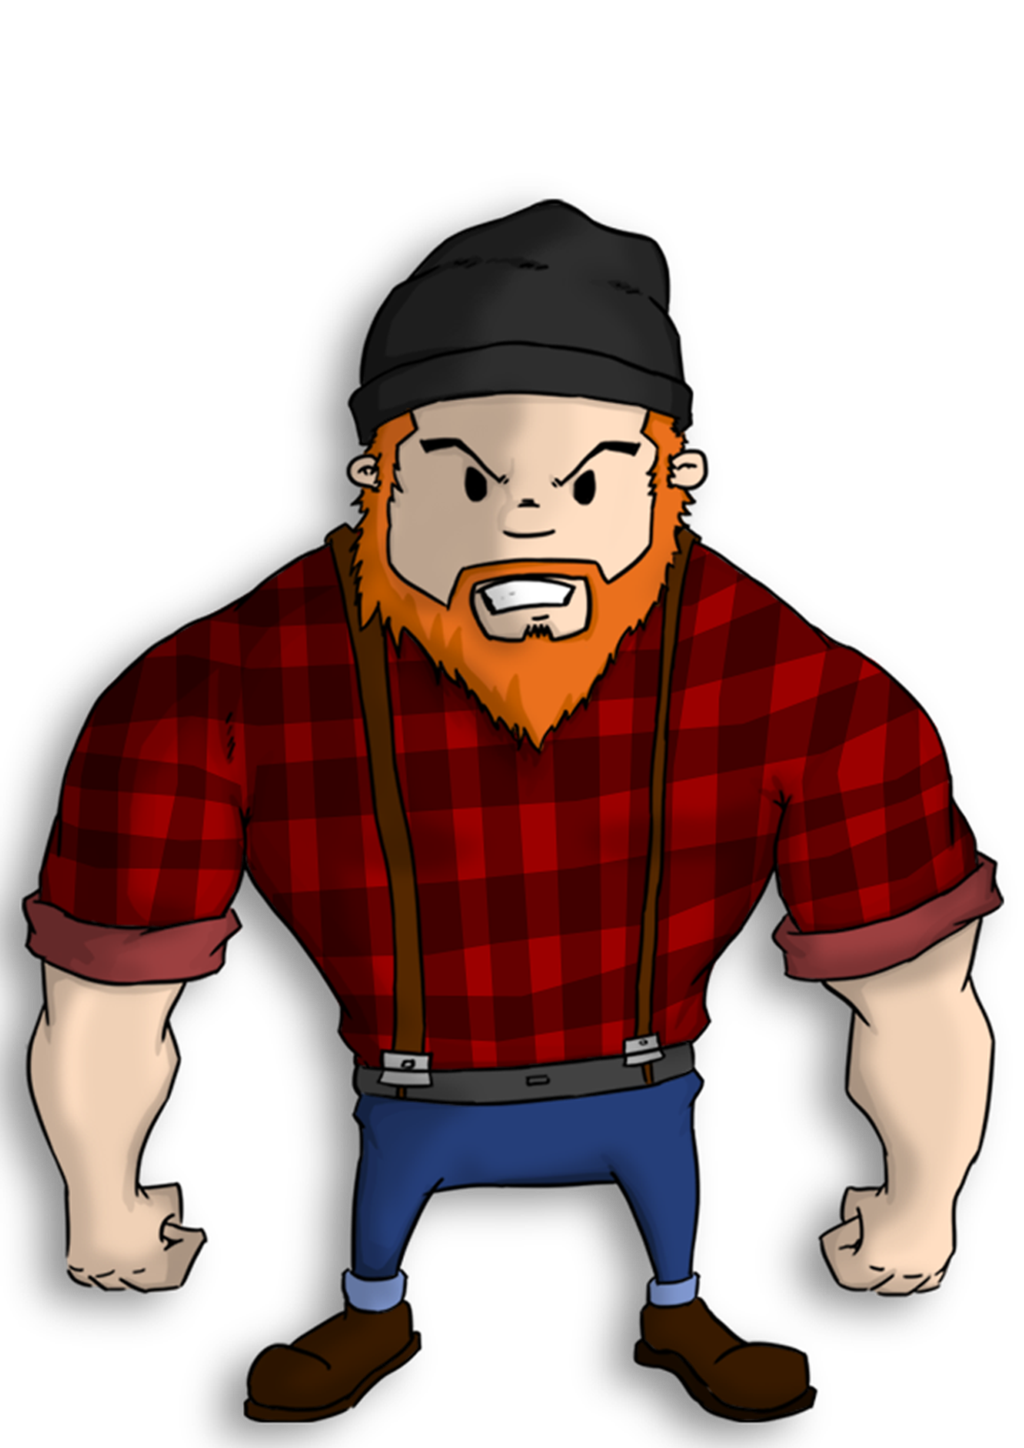 Manly cross clipart clipart transparent download Image result for cartoon lumberjack | Guy Card Clipart | Pinterest ... clipart transparent download